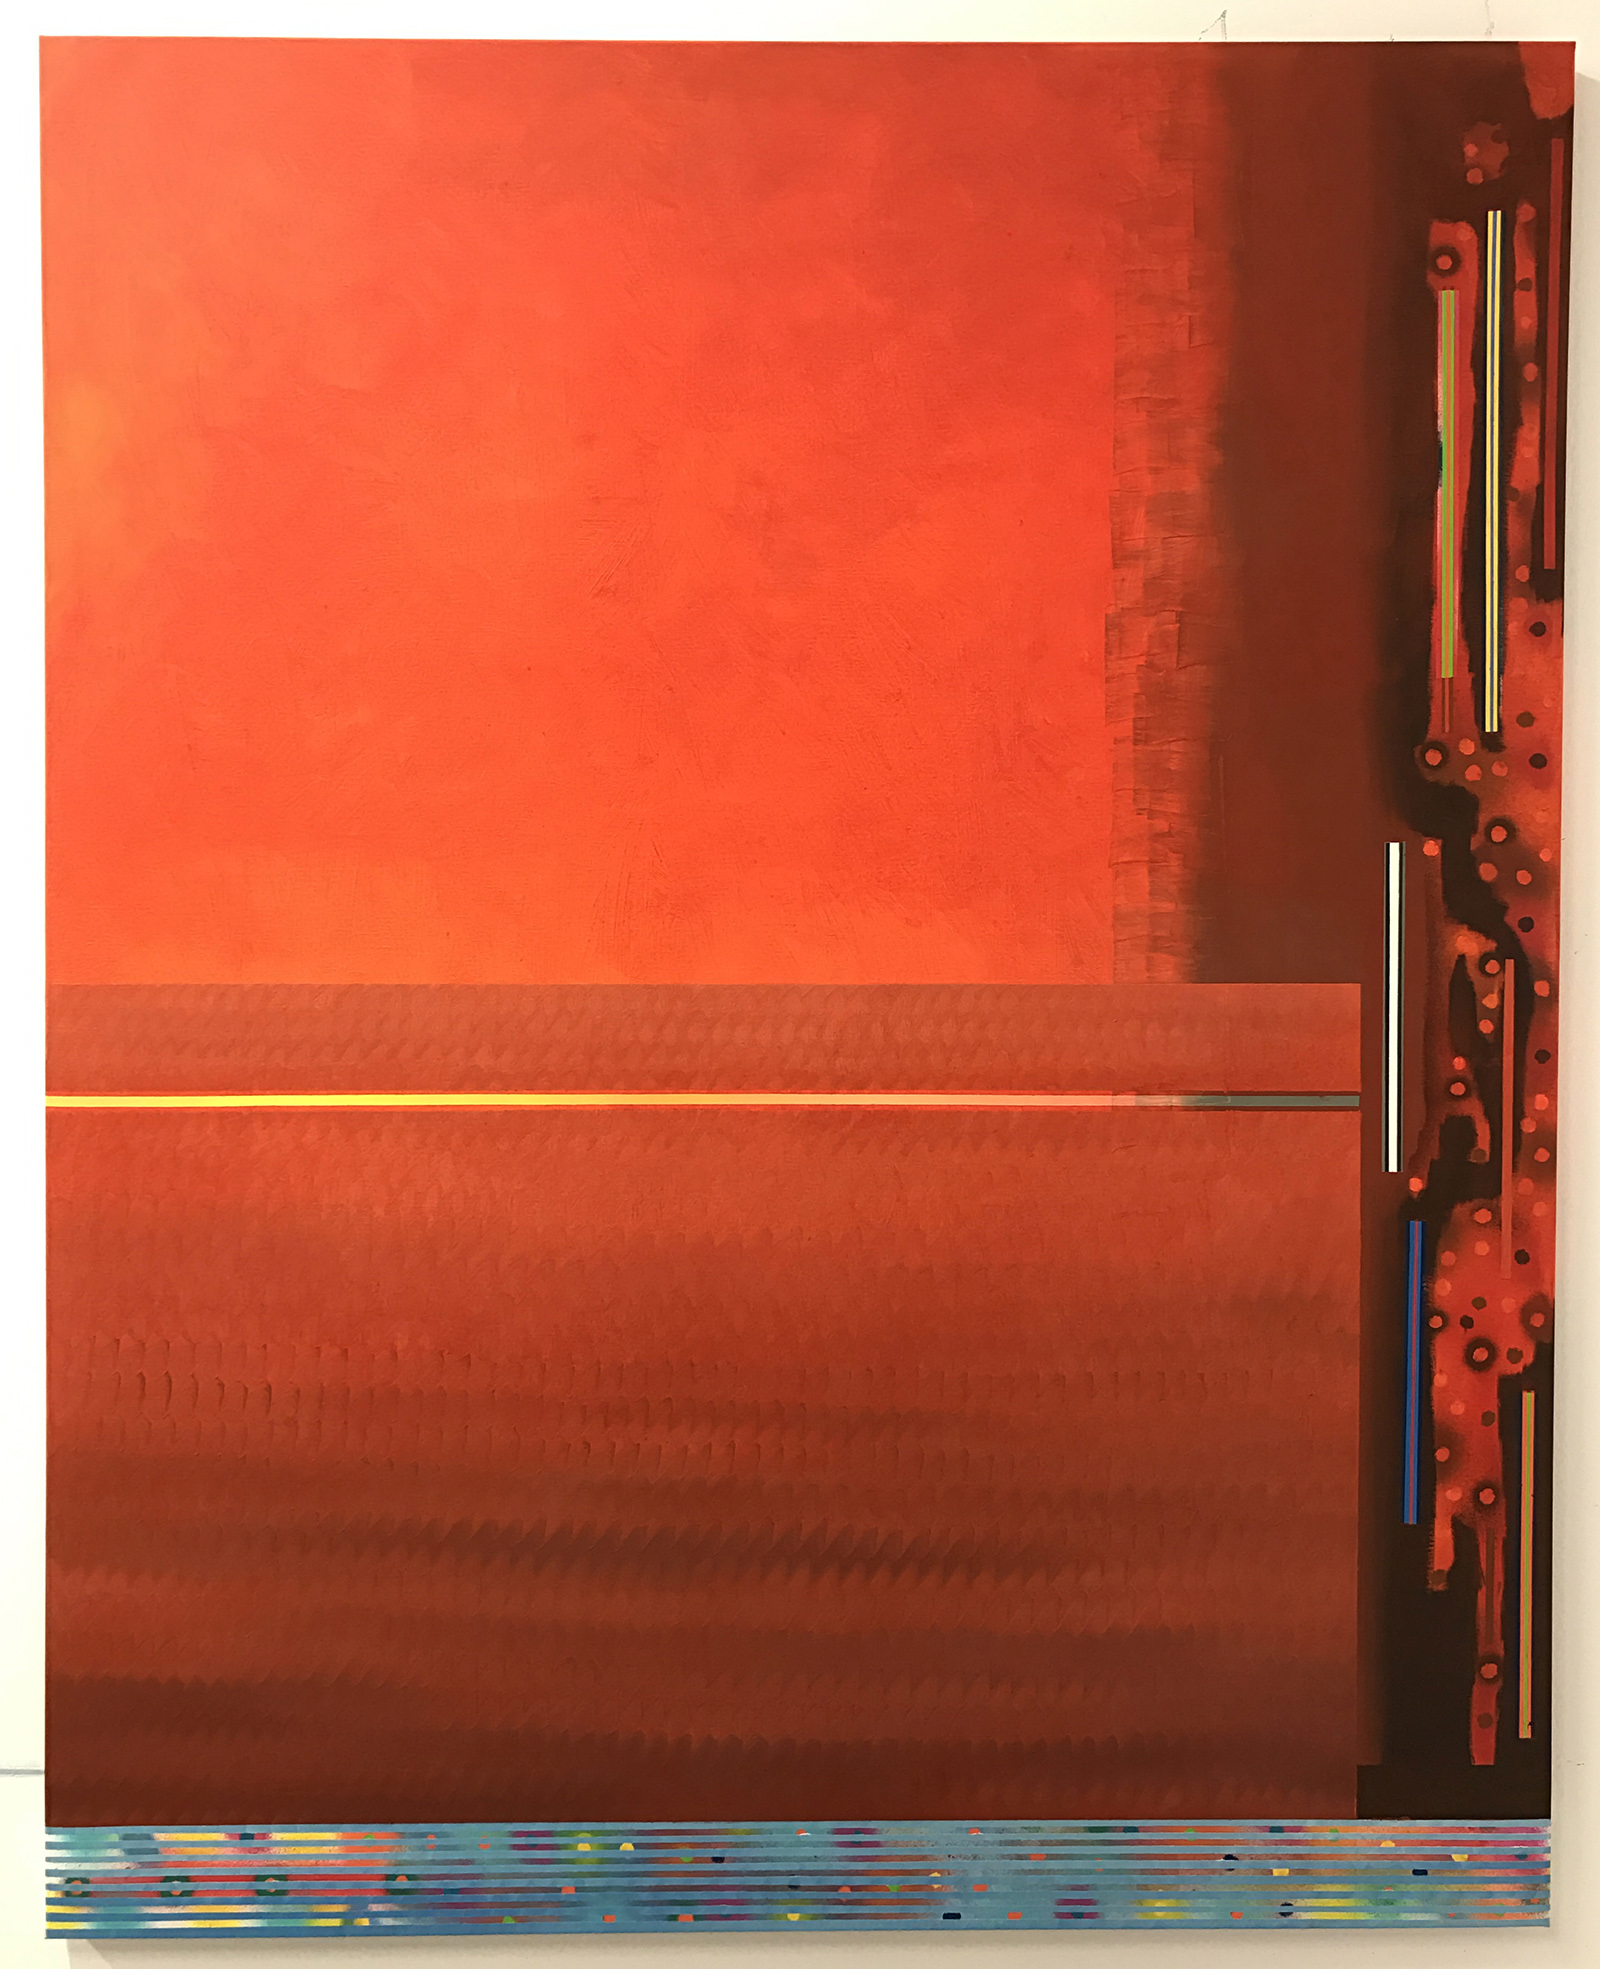 Redland 1 -oil on canvas 162 x 130 cm- 2017 (private collection, San Francisco)